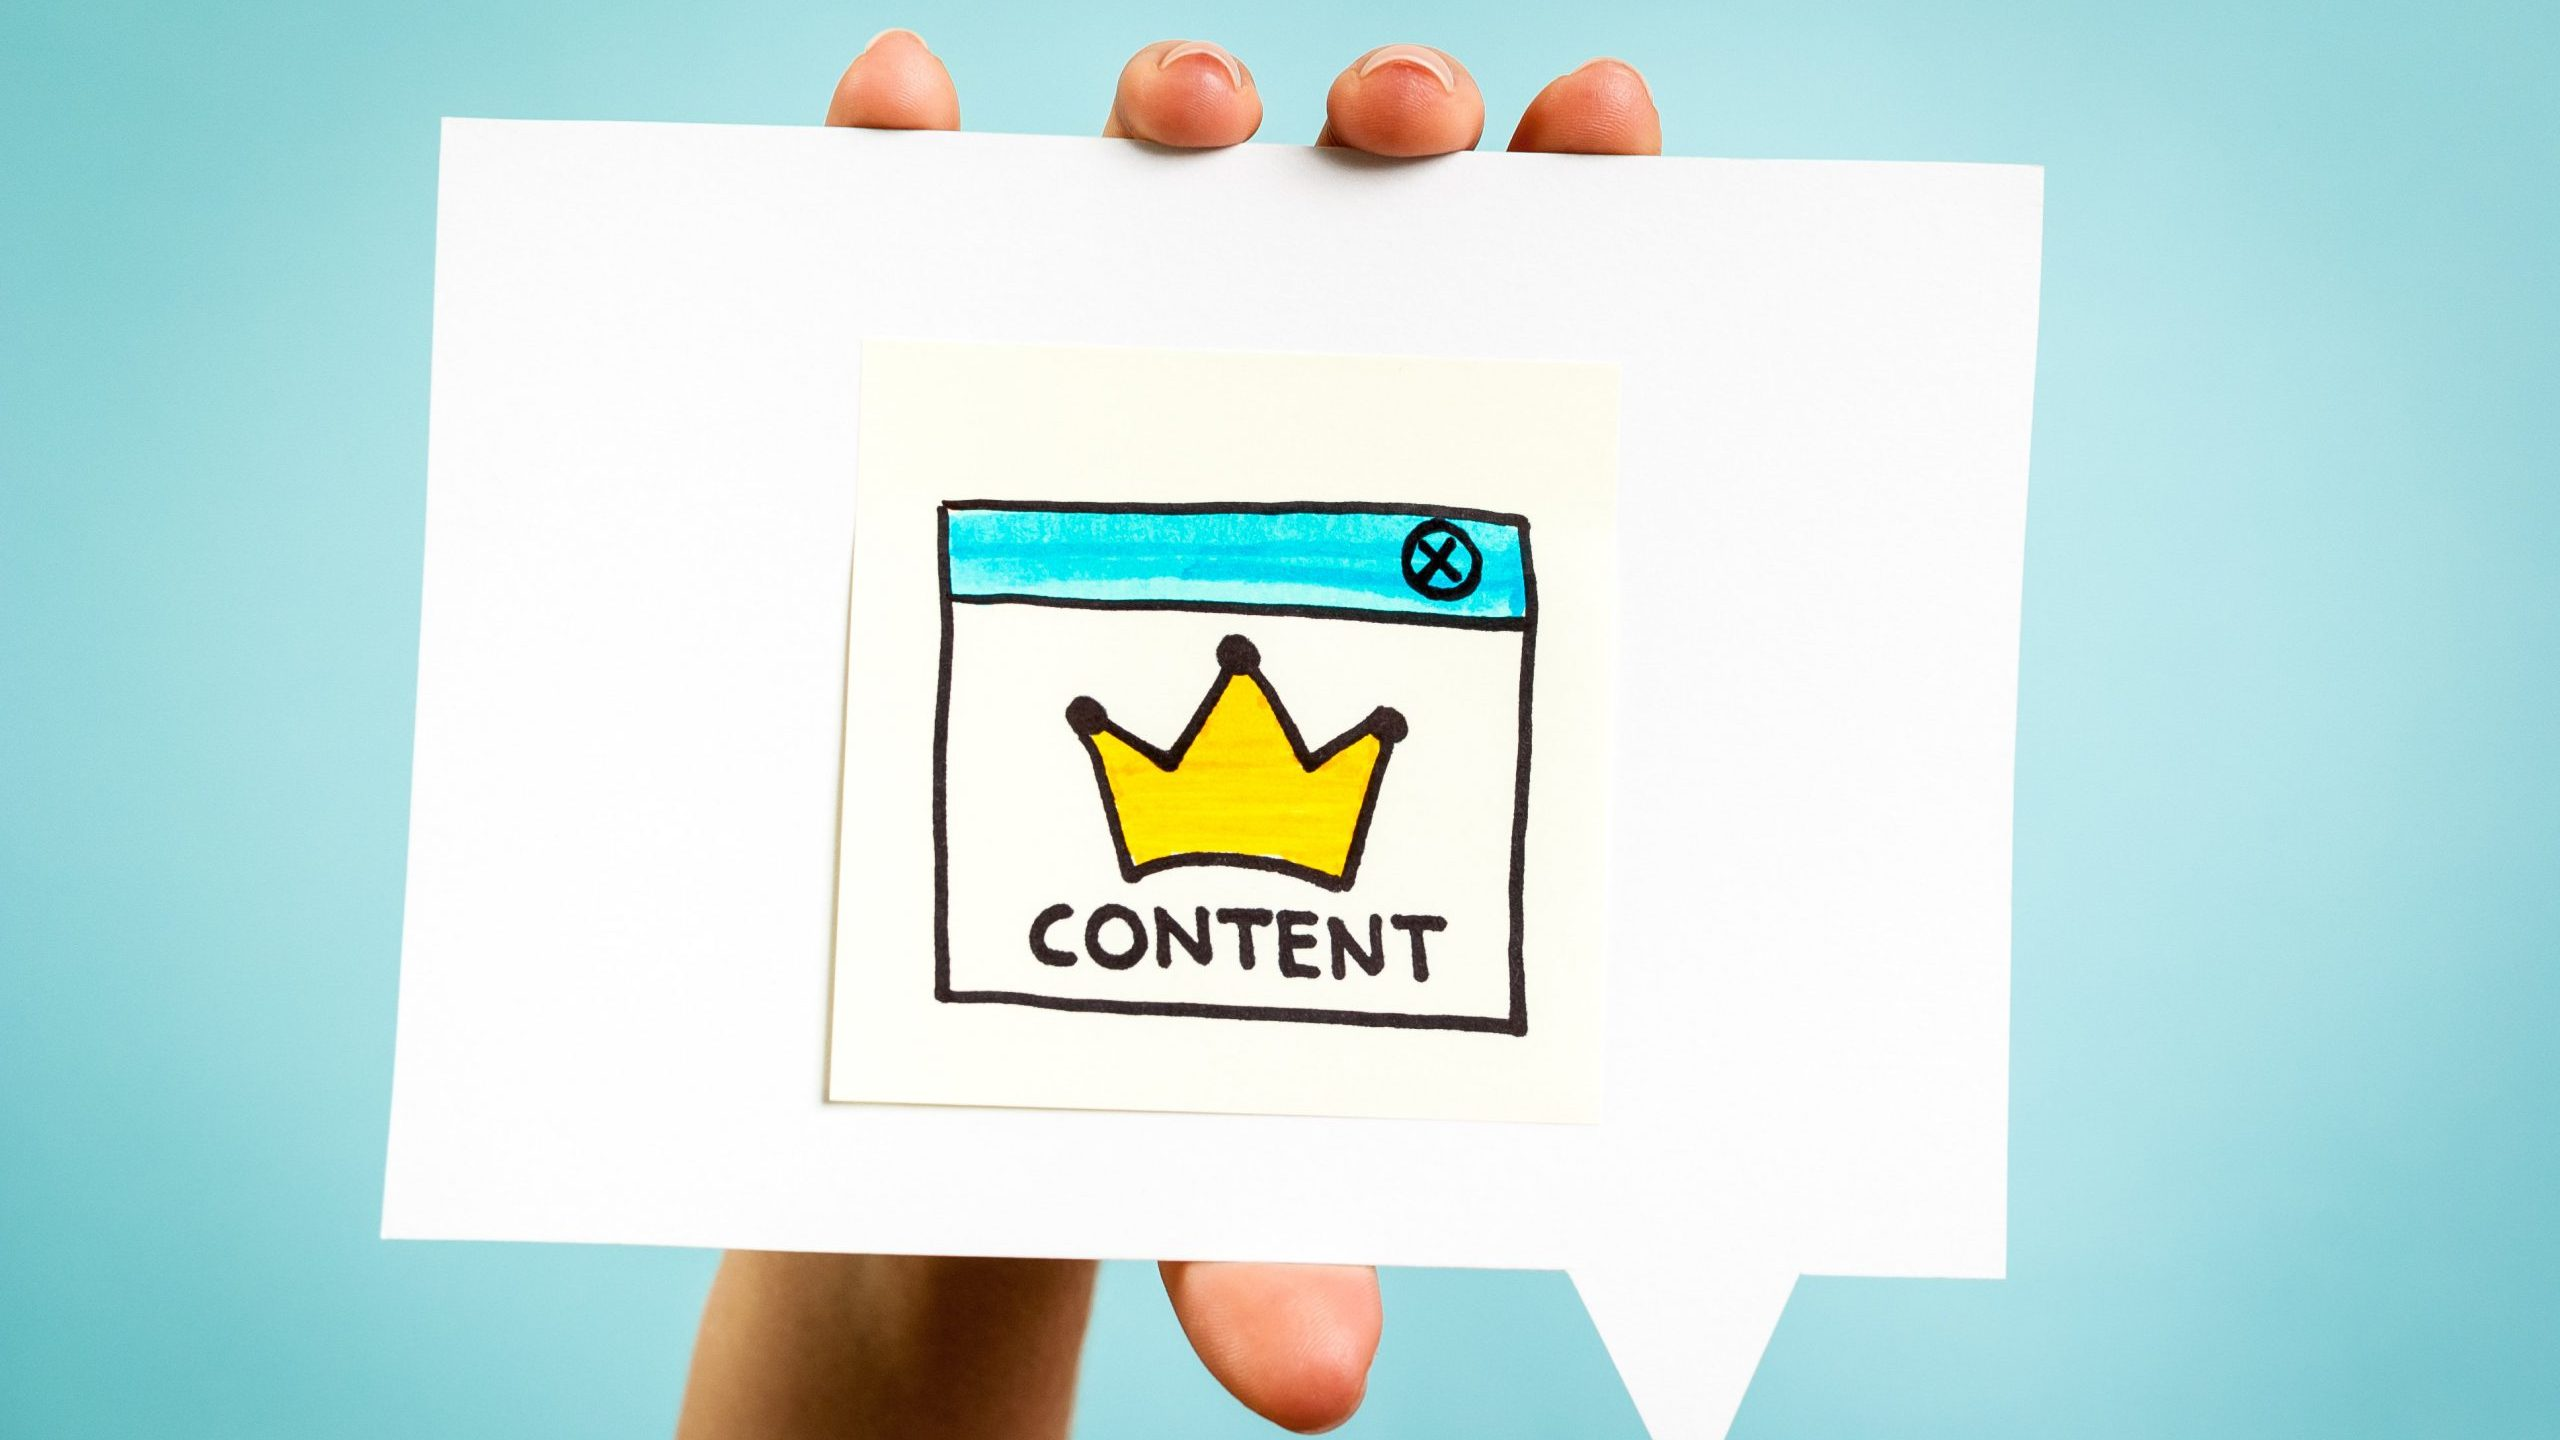 Why Content Should Drive Your Marketing Strategy